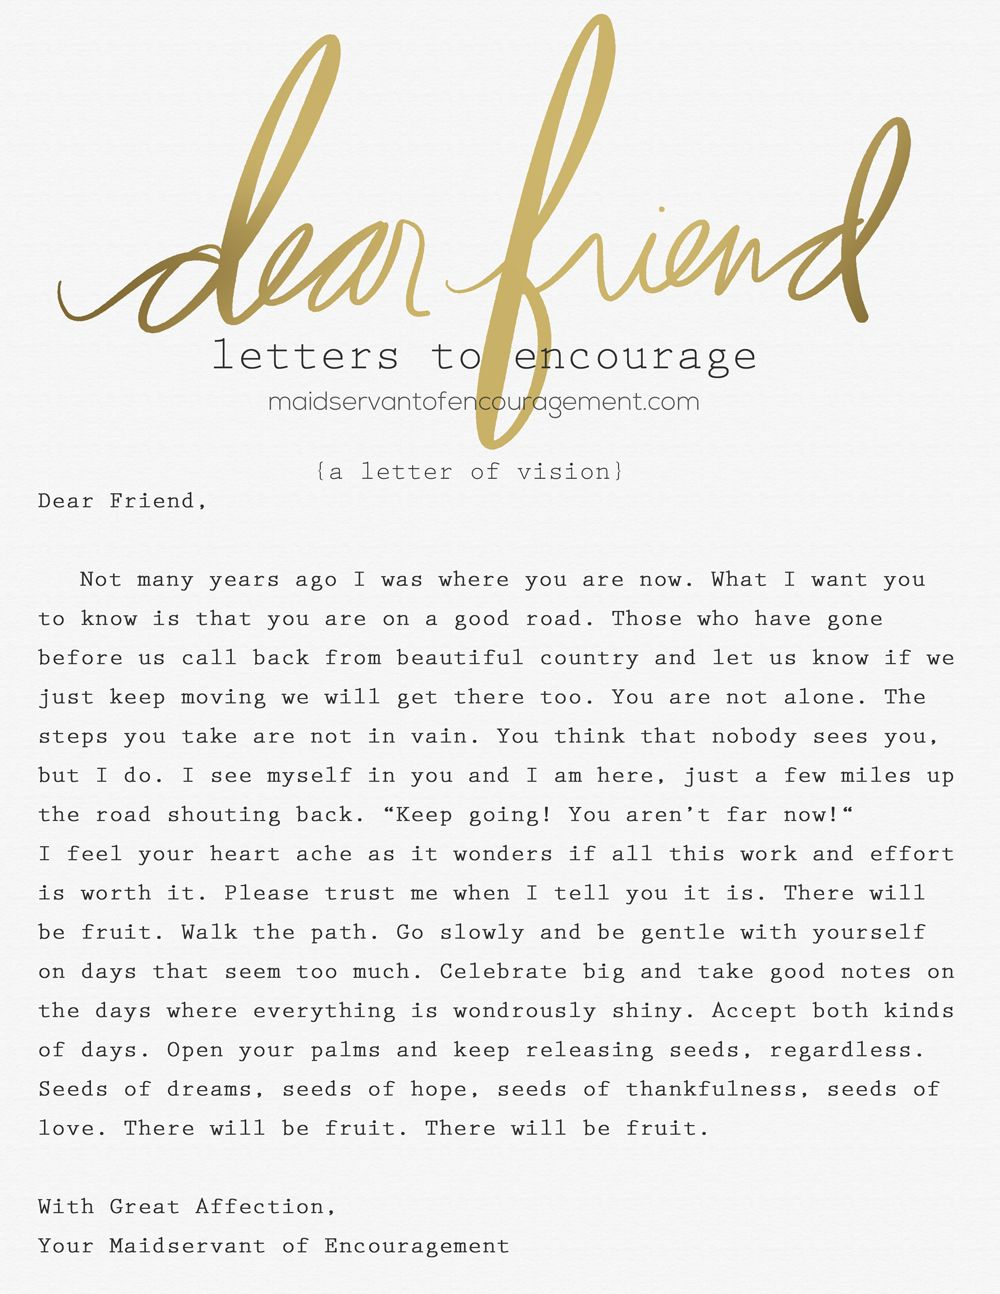 Dear Friend (Letters to Encourage from Maidservant of